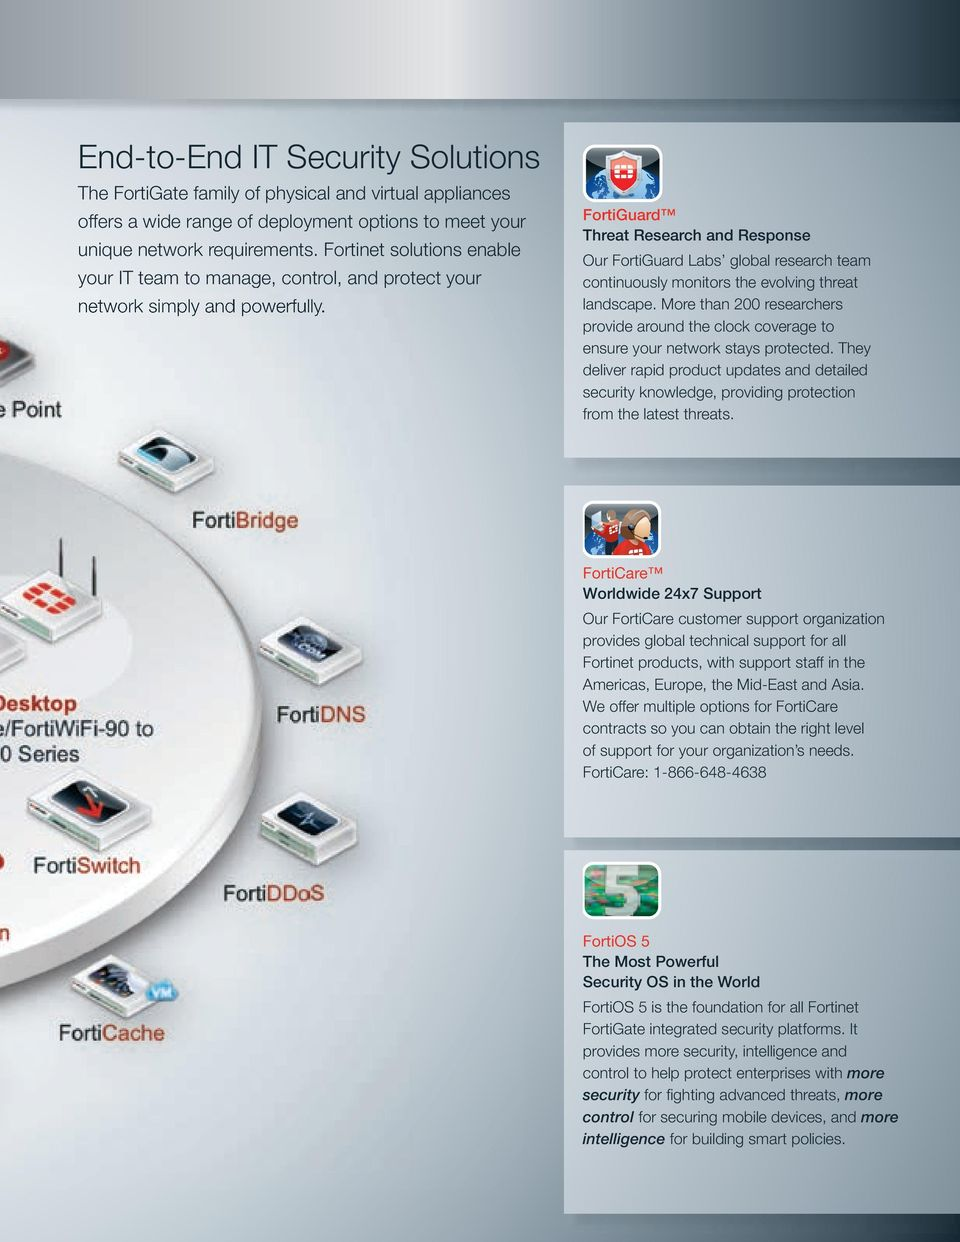 FortiGuard Threat Research and Response Our FortiGuard Labs global research team continuously monitors the evolving threat landscape.